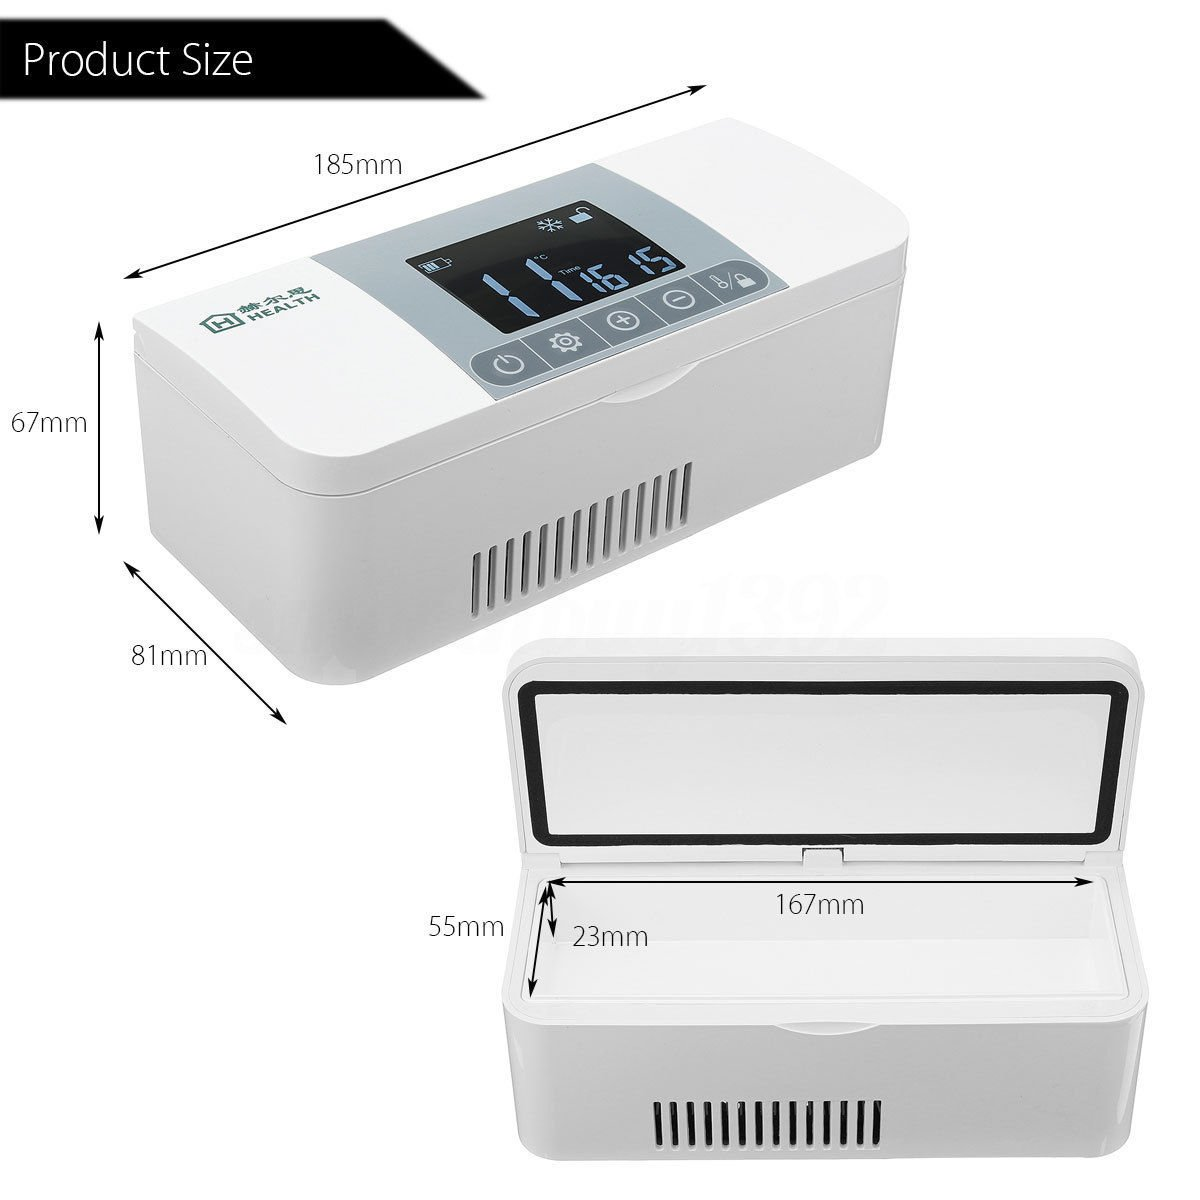 Protable Insulin Cooler 2-8°C Refrigerated Small Box